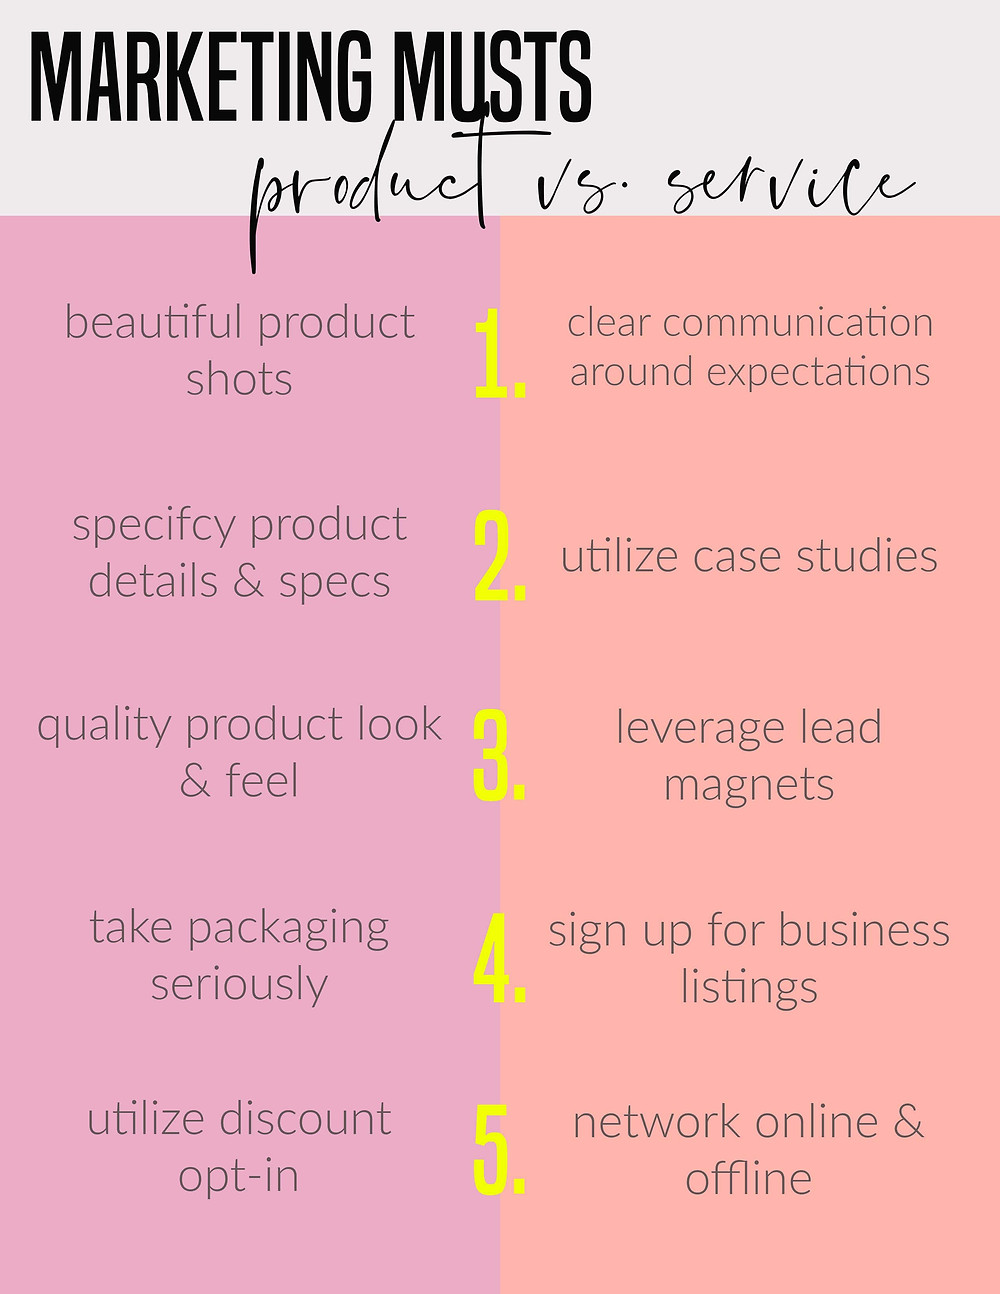 marketing musts for product vs service based marketing infographic